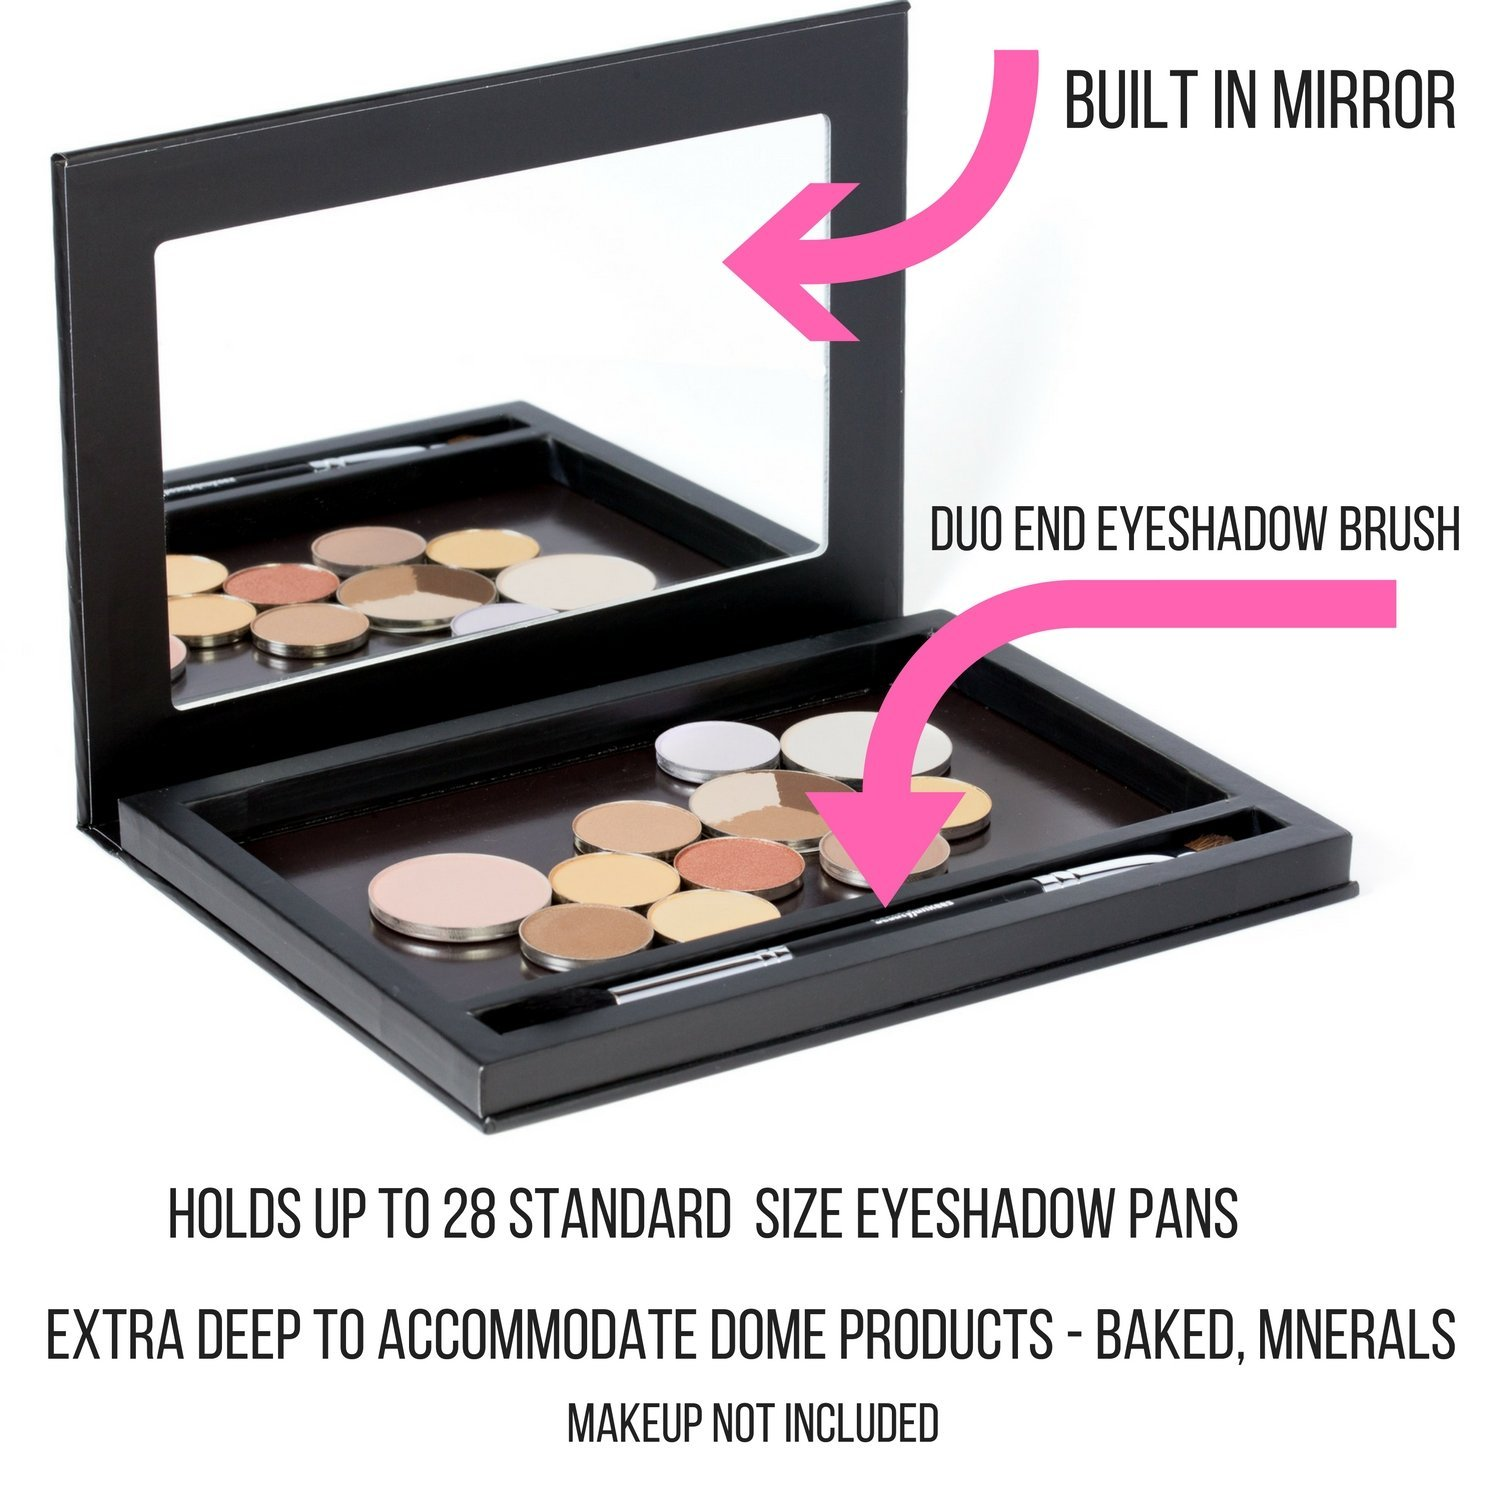 Large Black Empty Magnetic Makeup Palette with Mirror: Organizer Case for Eye... image 3